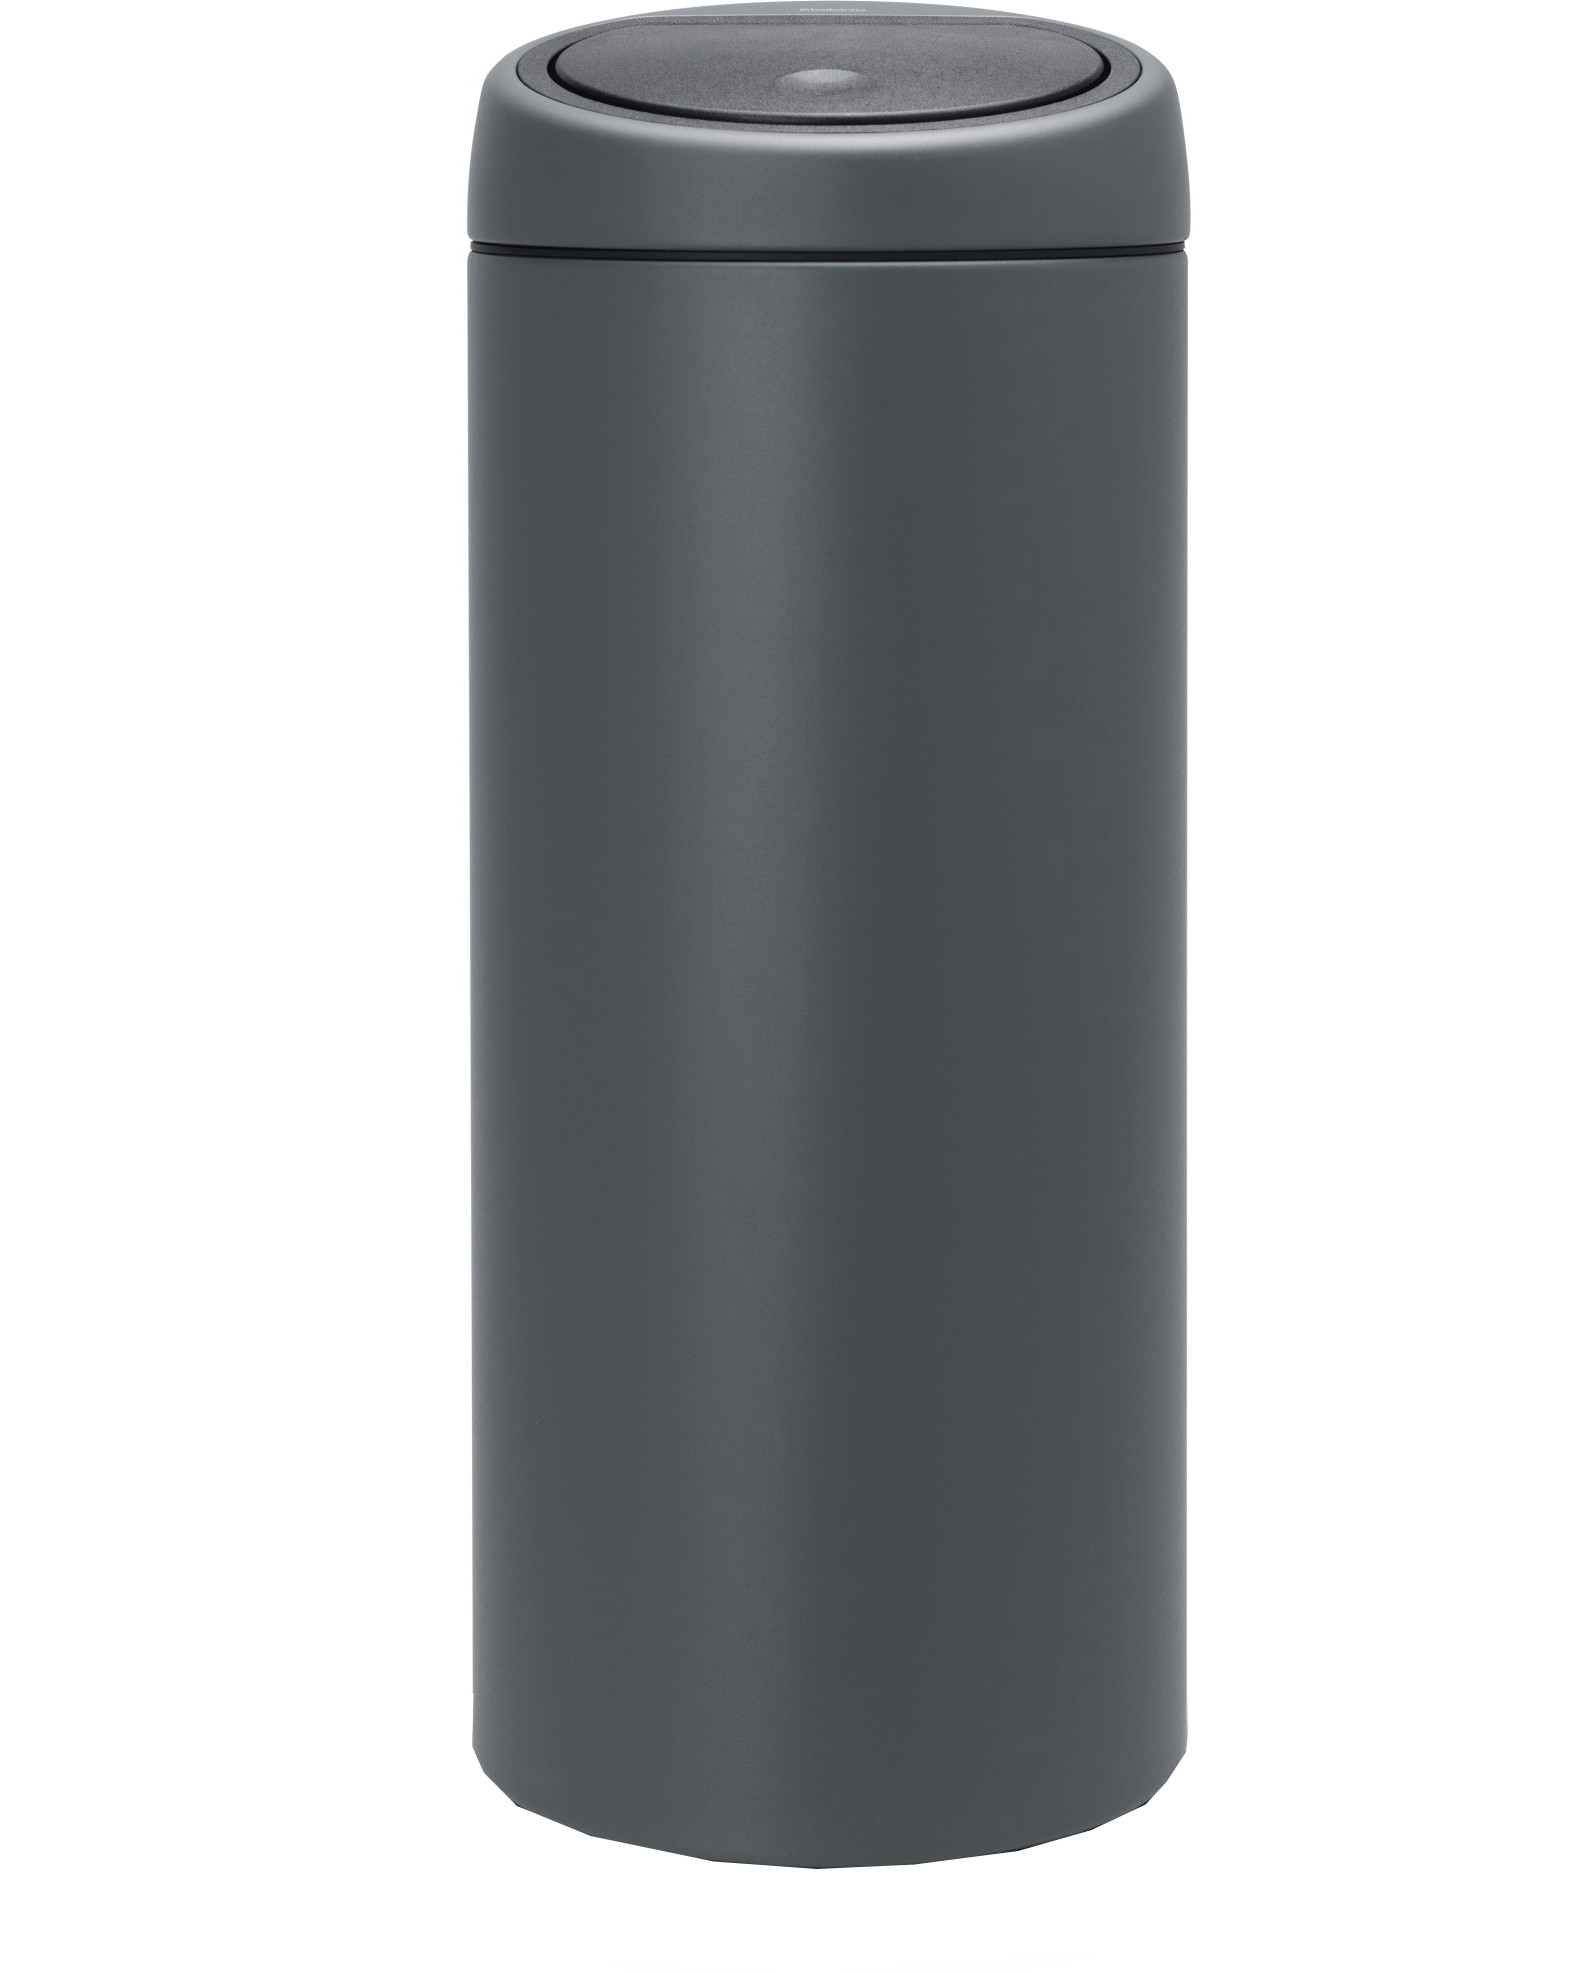 sac poubelle 30 litres brabantia touch bin litres gris. Black Bedroom Furniture Sets. Home Design Ideas